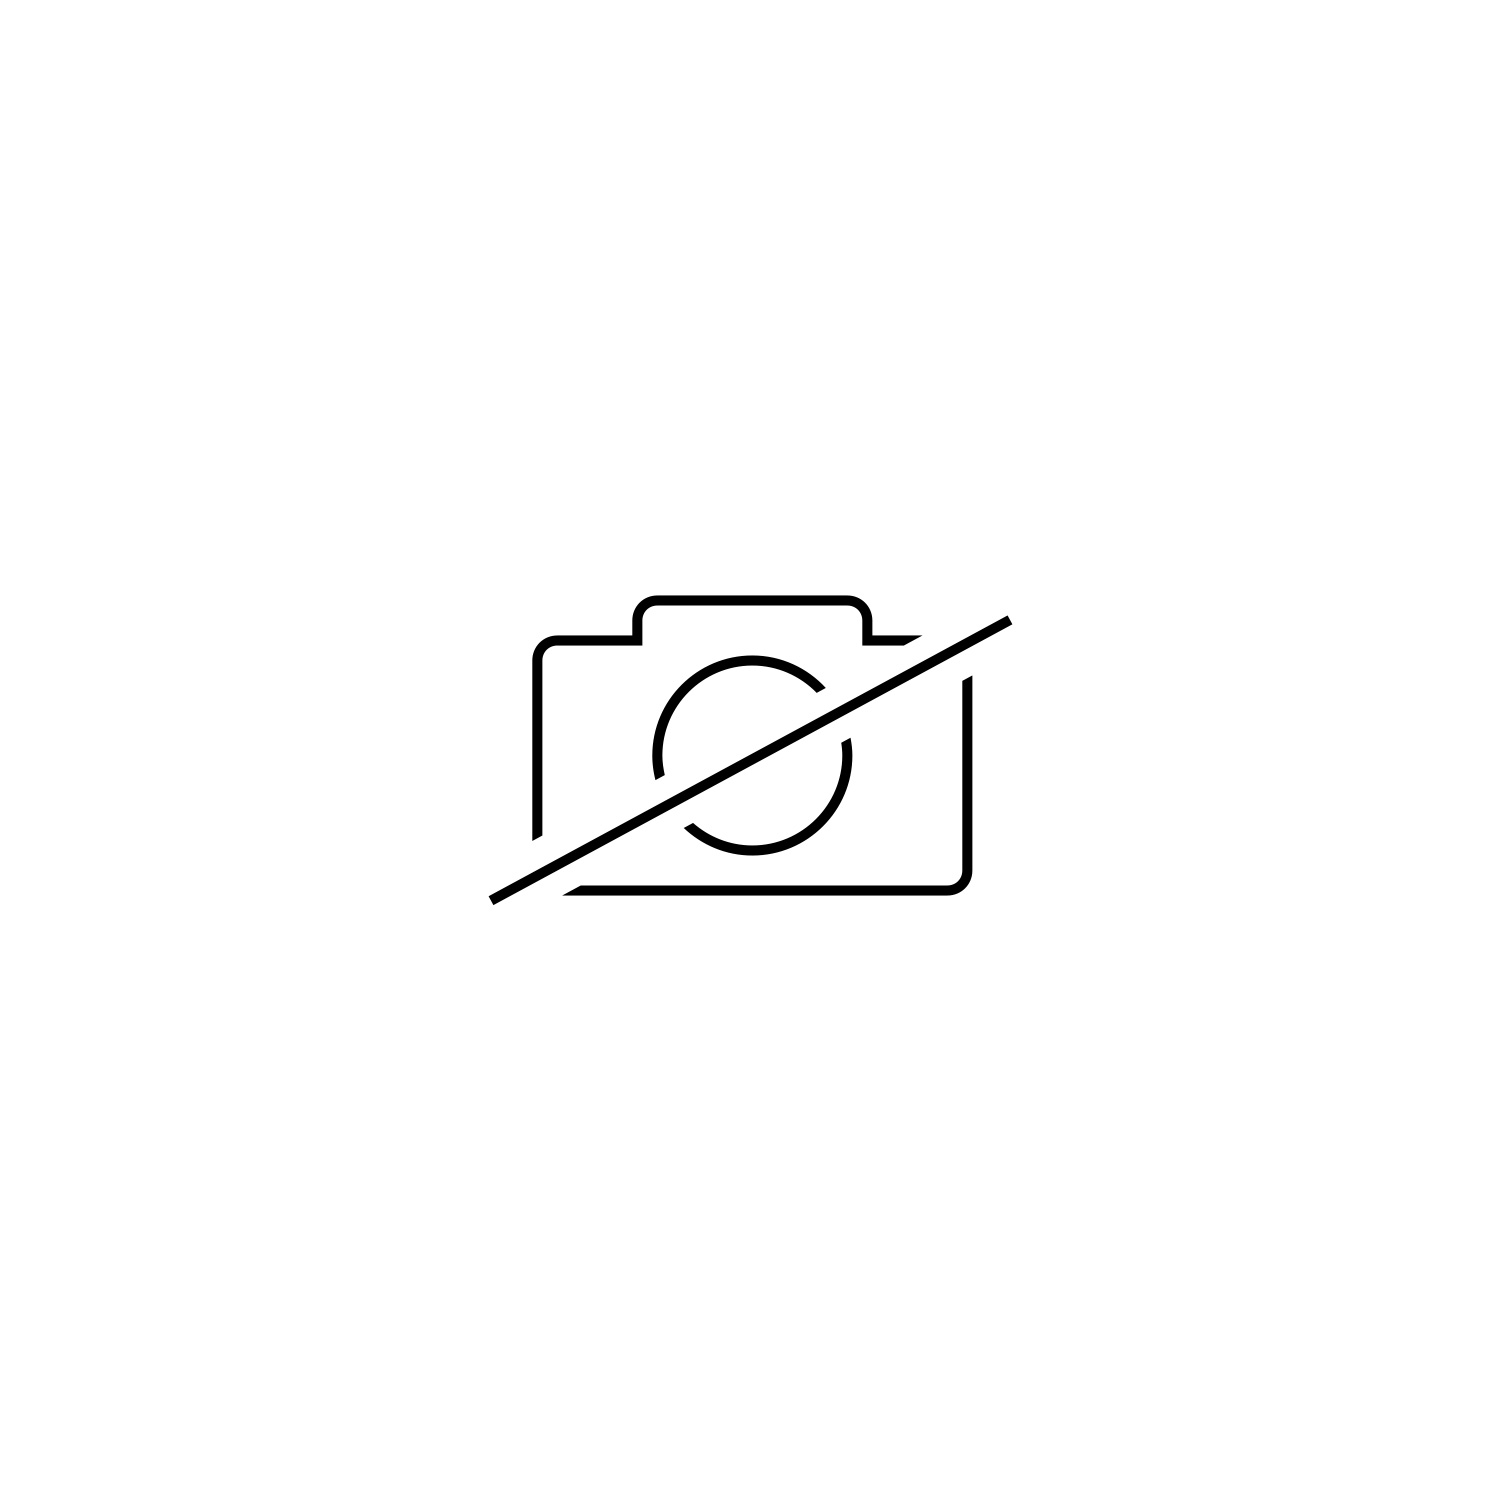 Audi Umbrella, black, big